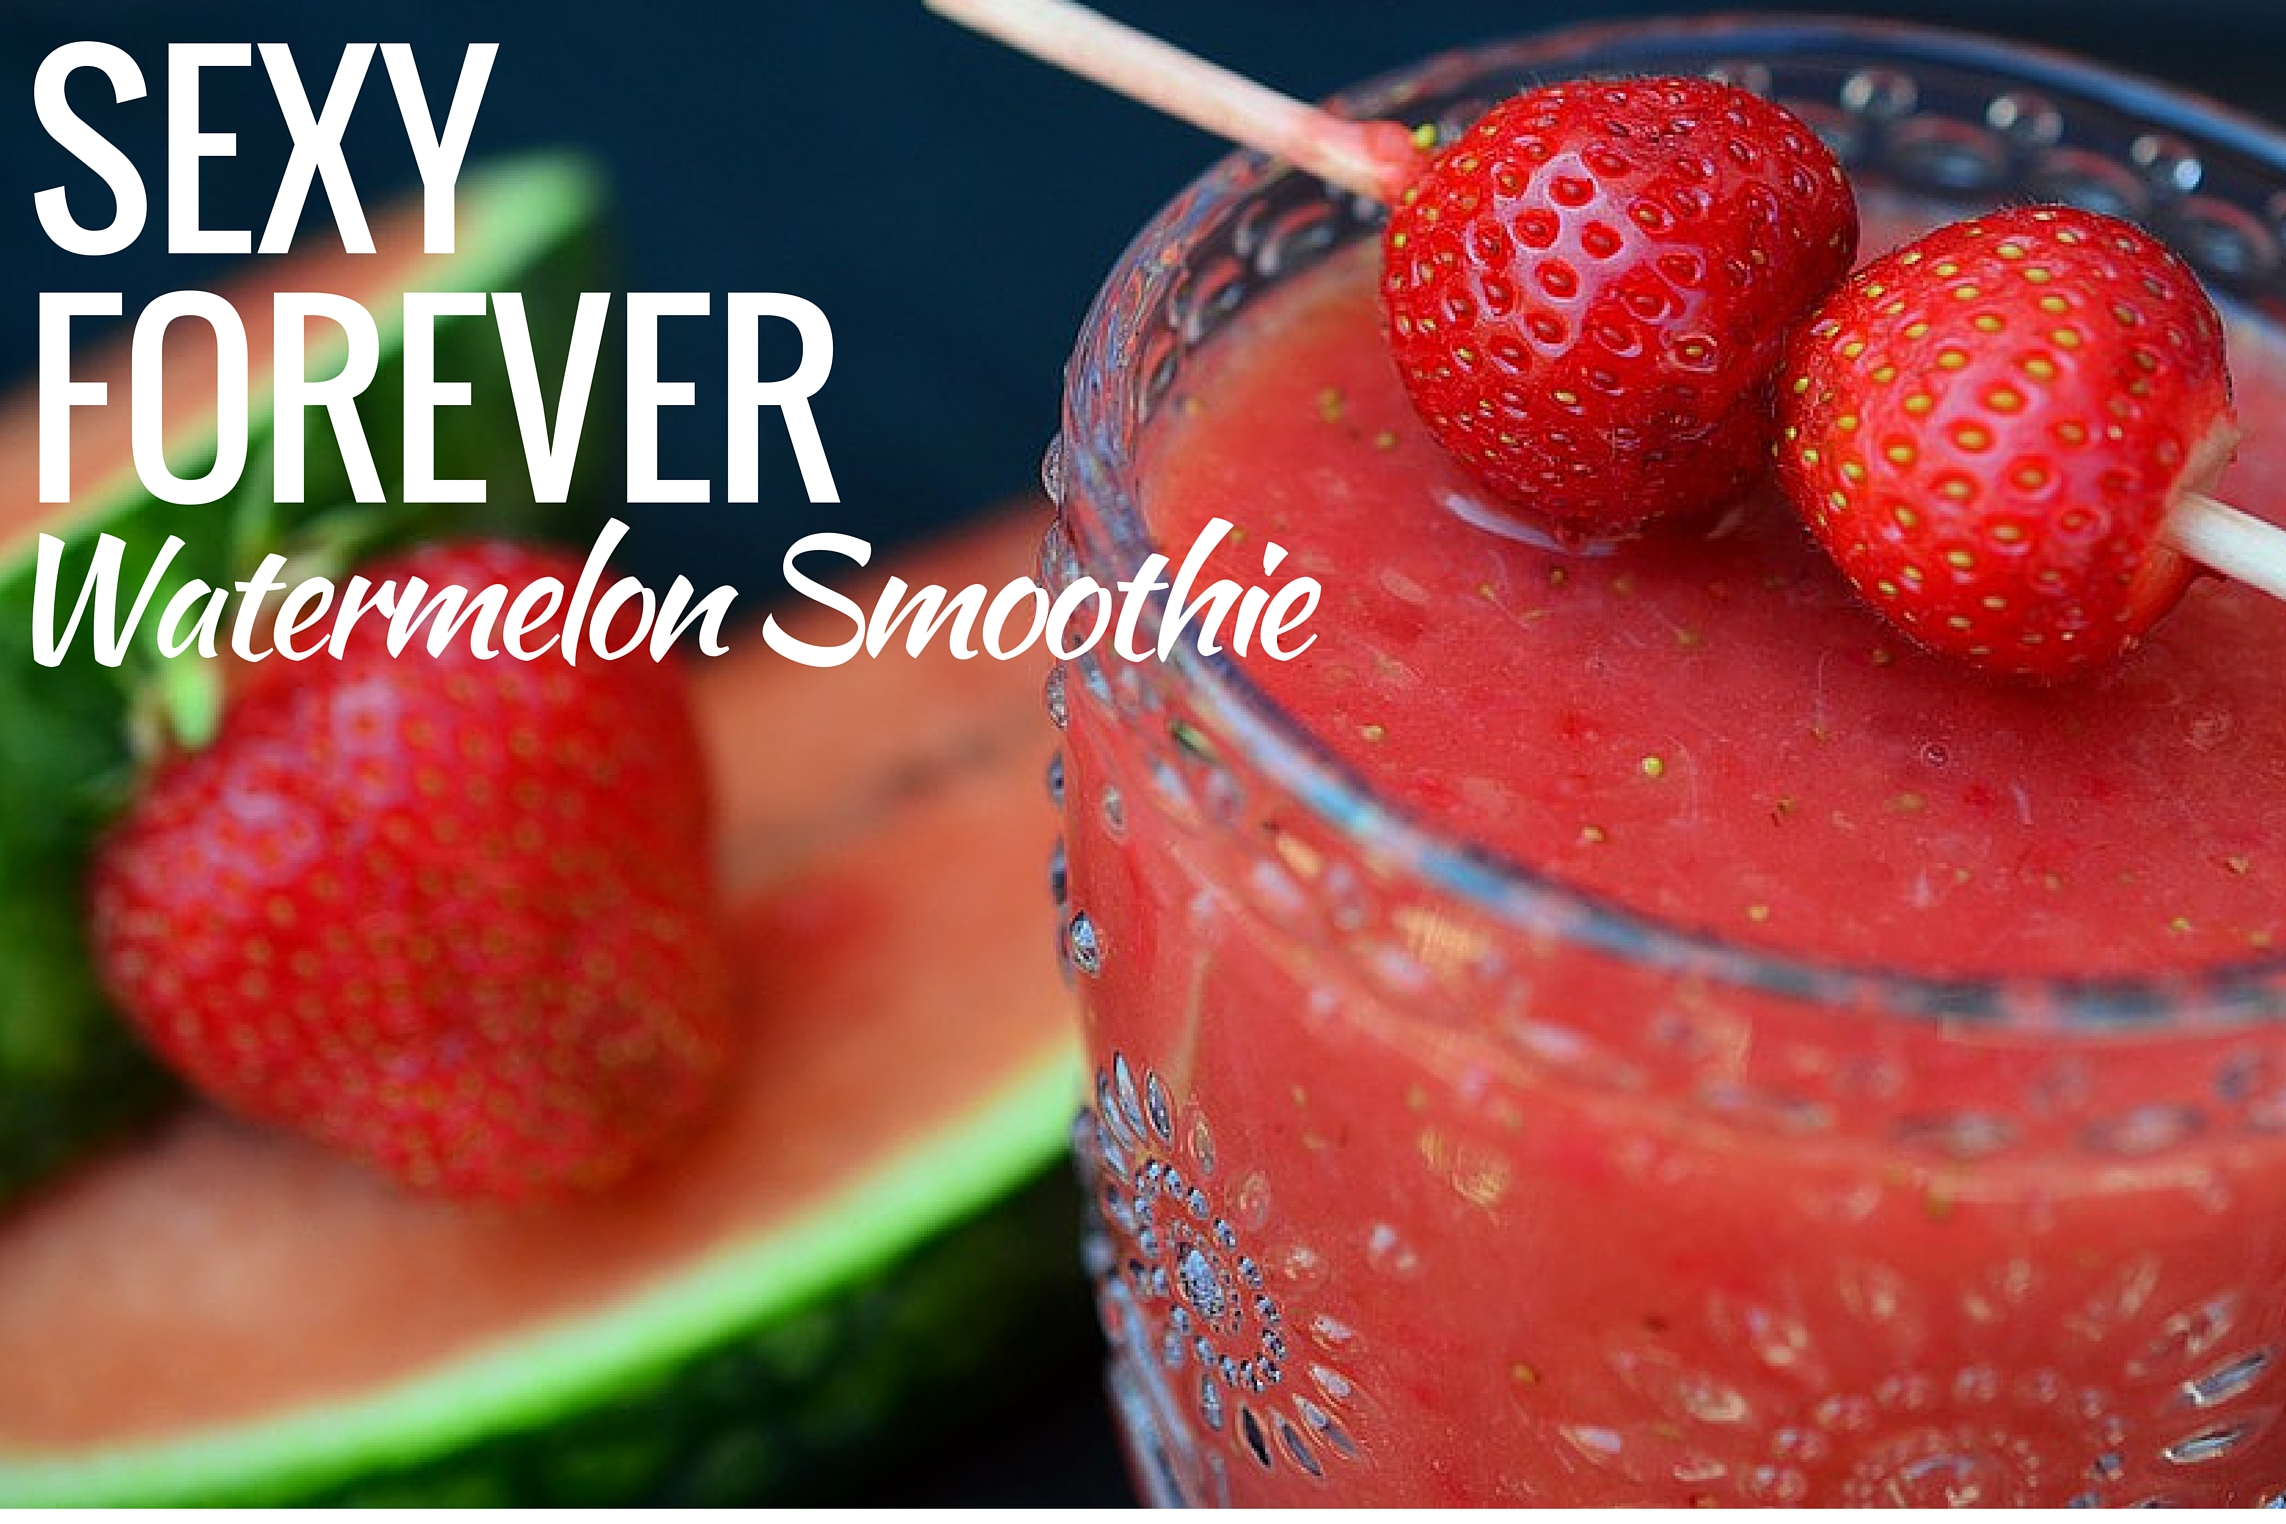 Watermelon Smoothie by Suzanne Somers